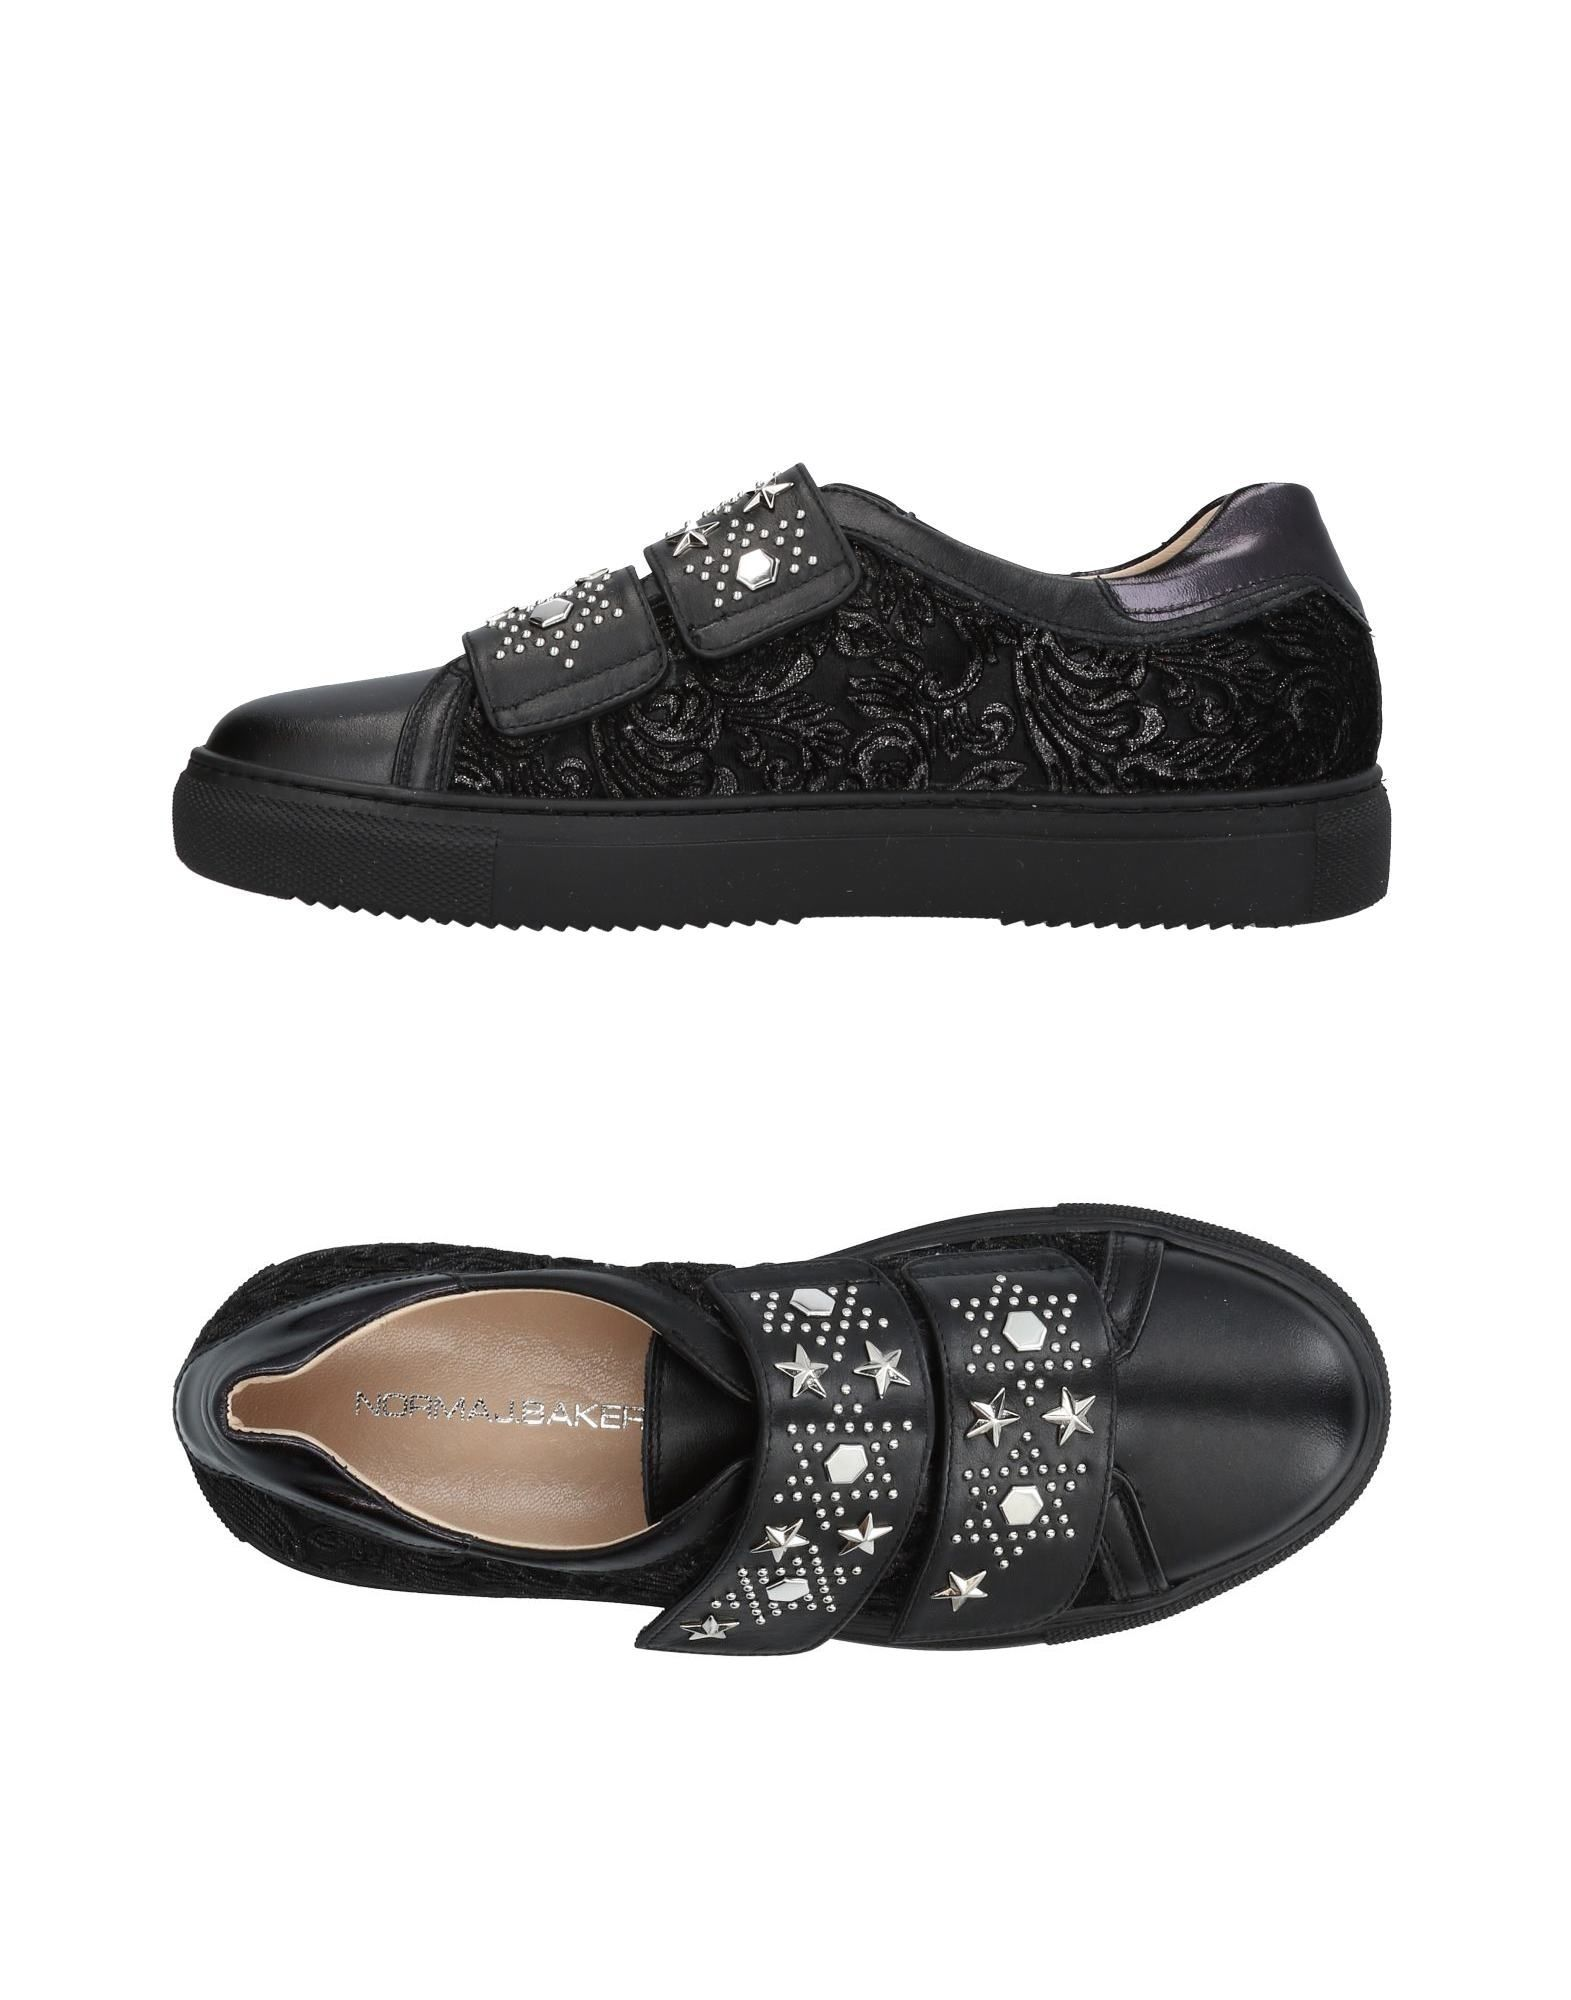 Sneakers Norma J.Baker Donna - 11447163QV